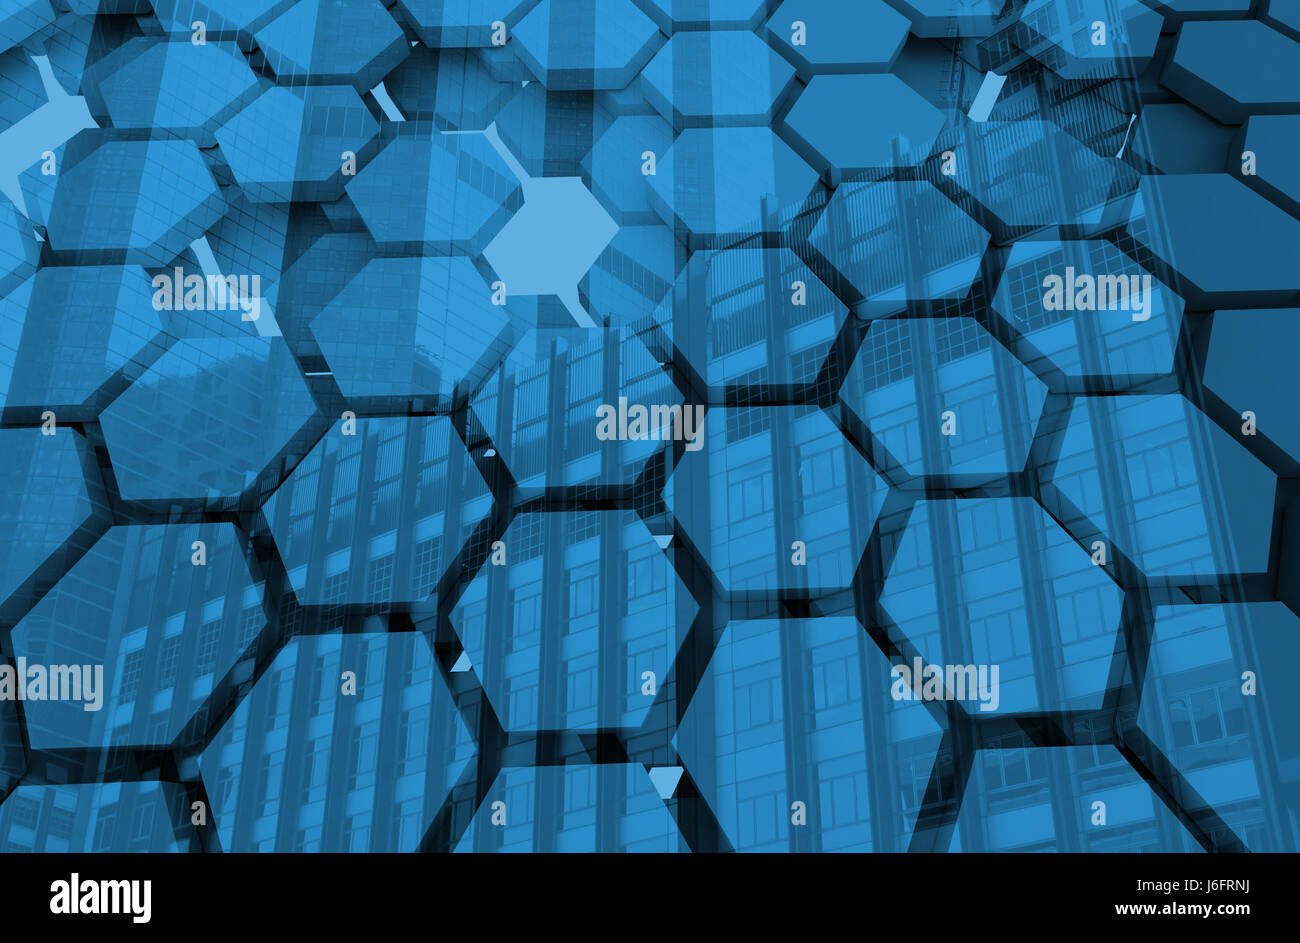 Blockchain Distributed ledger technology , Blue Hexagon six-sided polygon symbol on background , cryptocurrencies - Stock Image